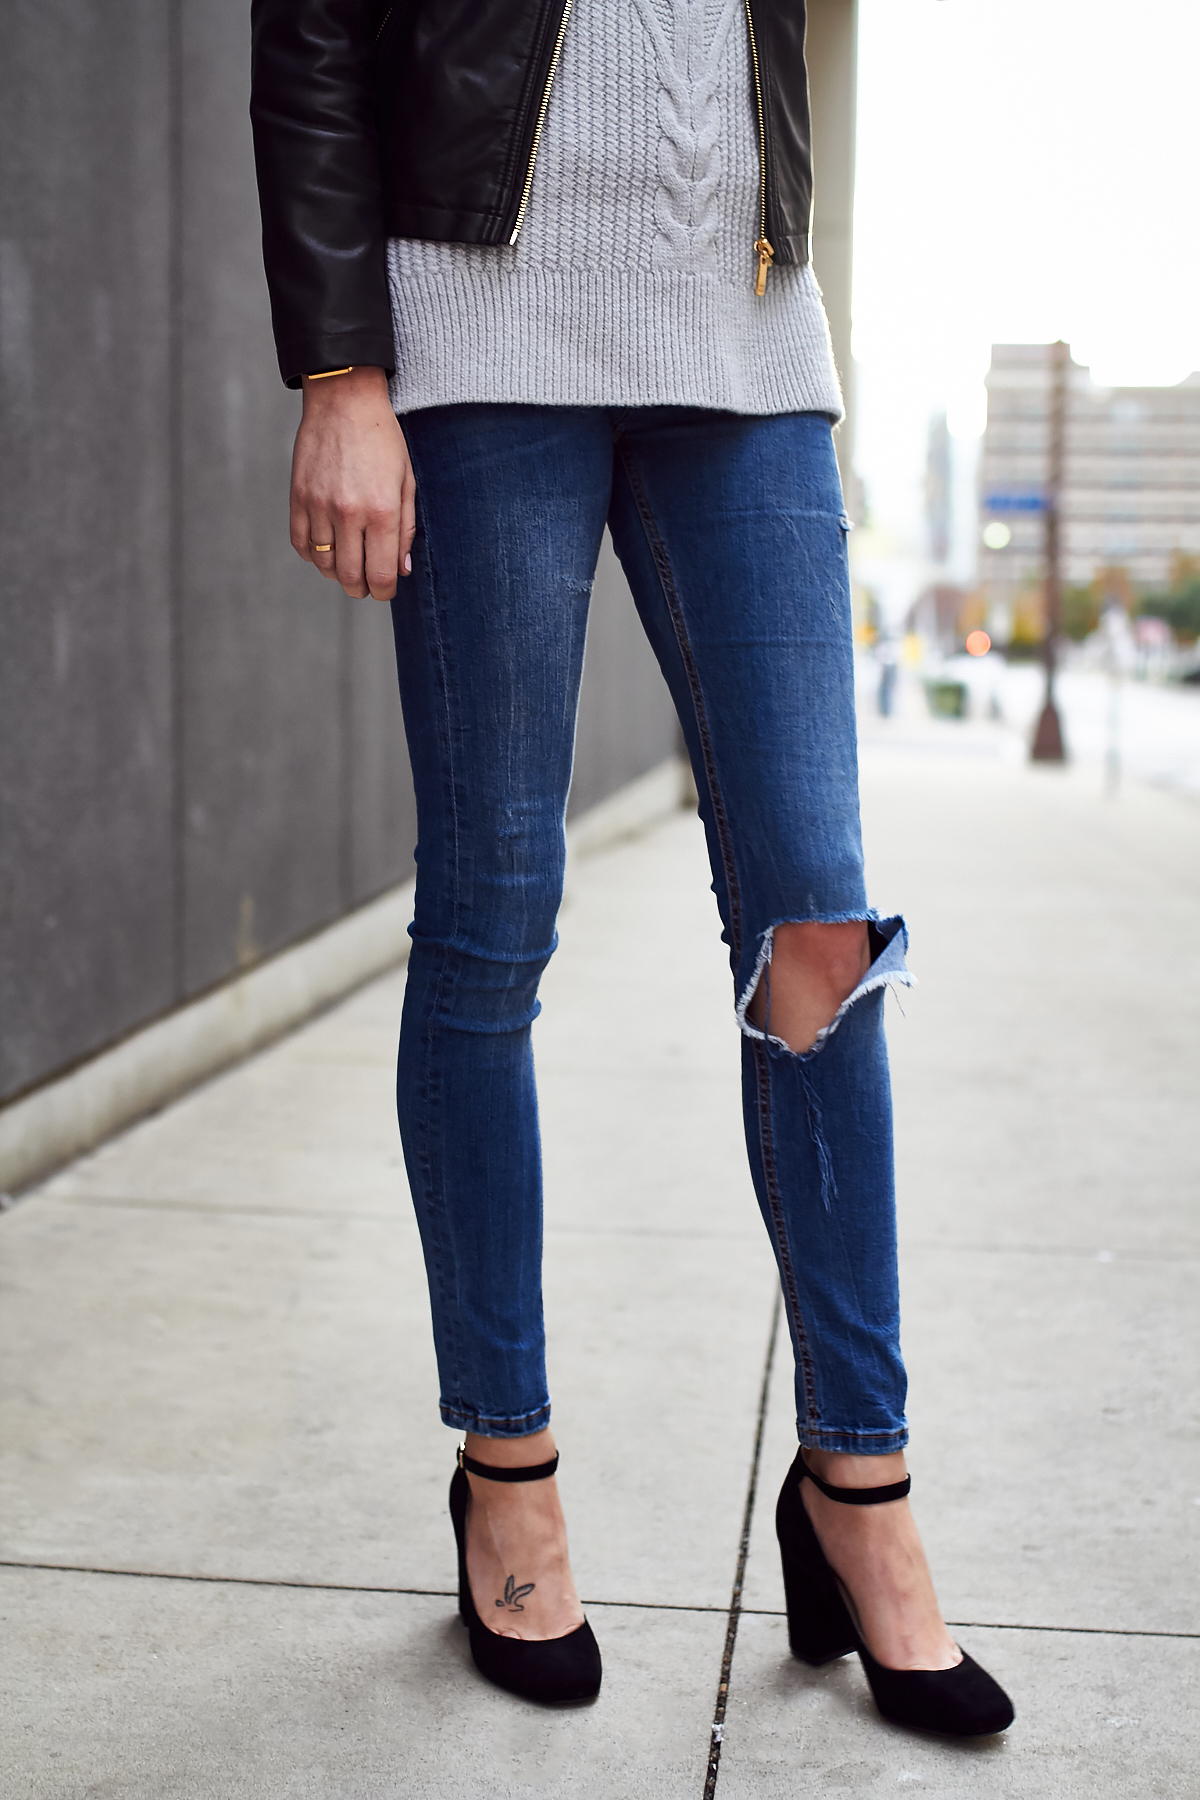 Fall Outfit, Denim Ripped Skinny Jeans, Black Ankle Strap Pumps